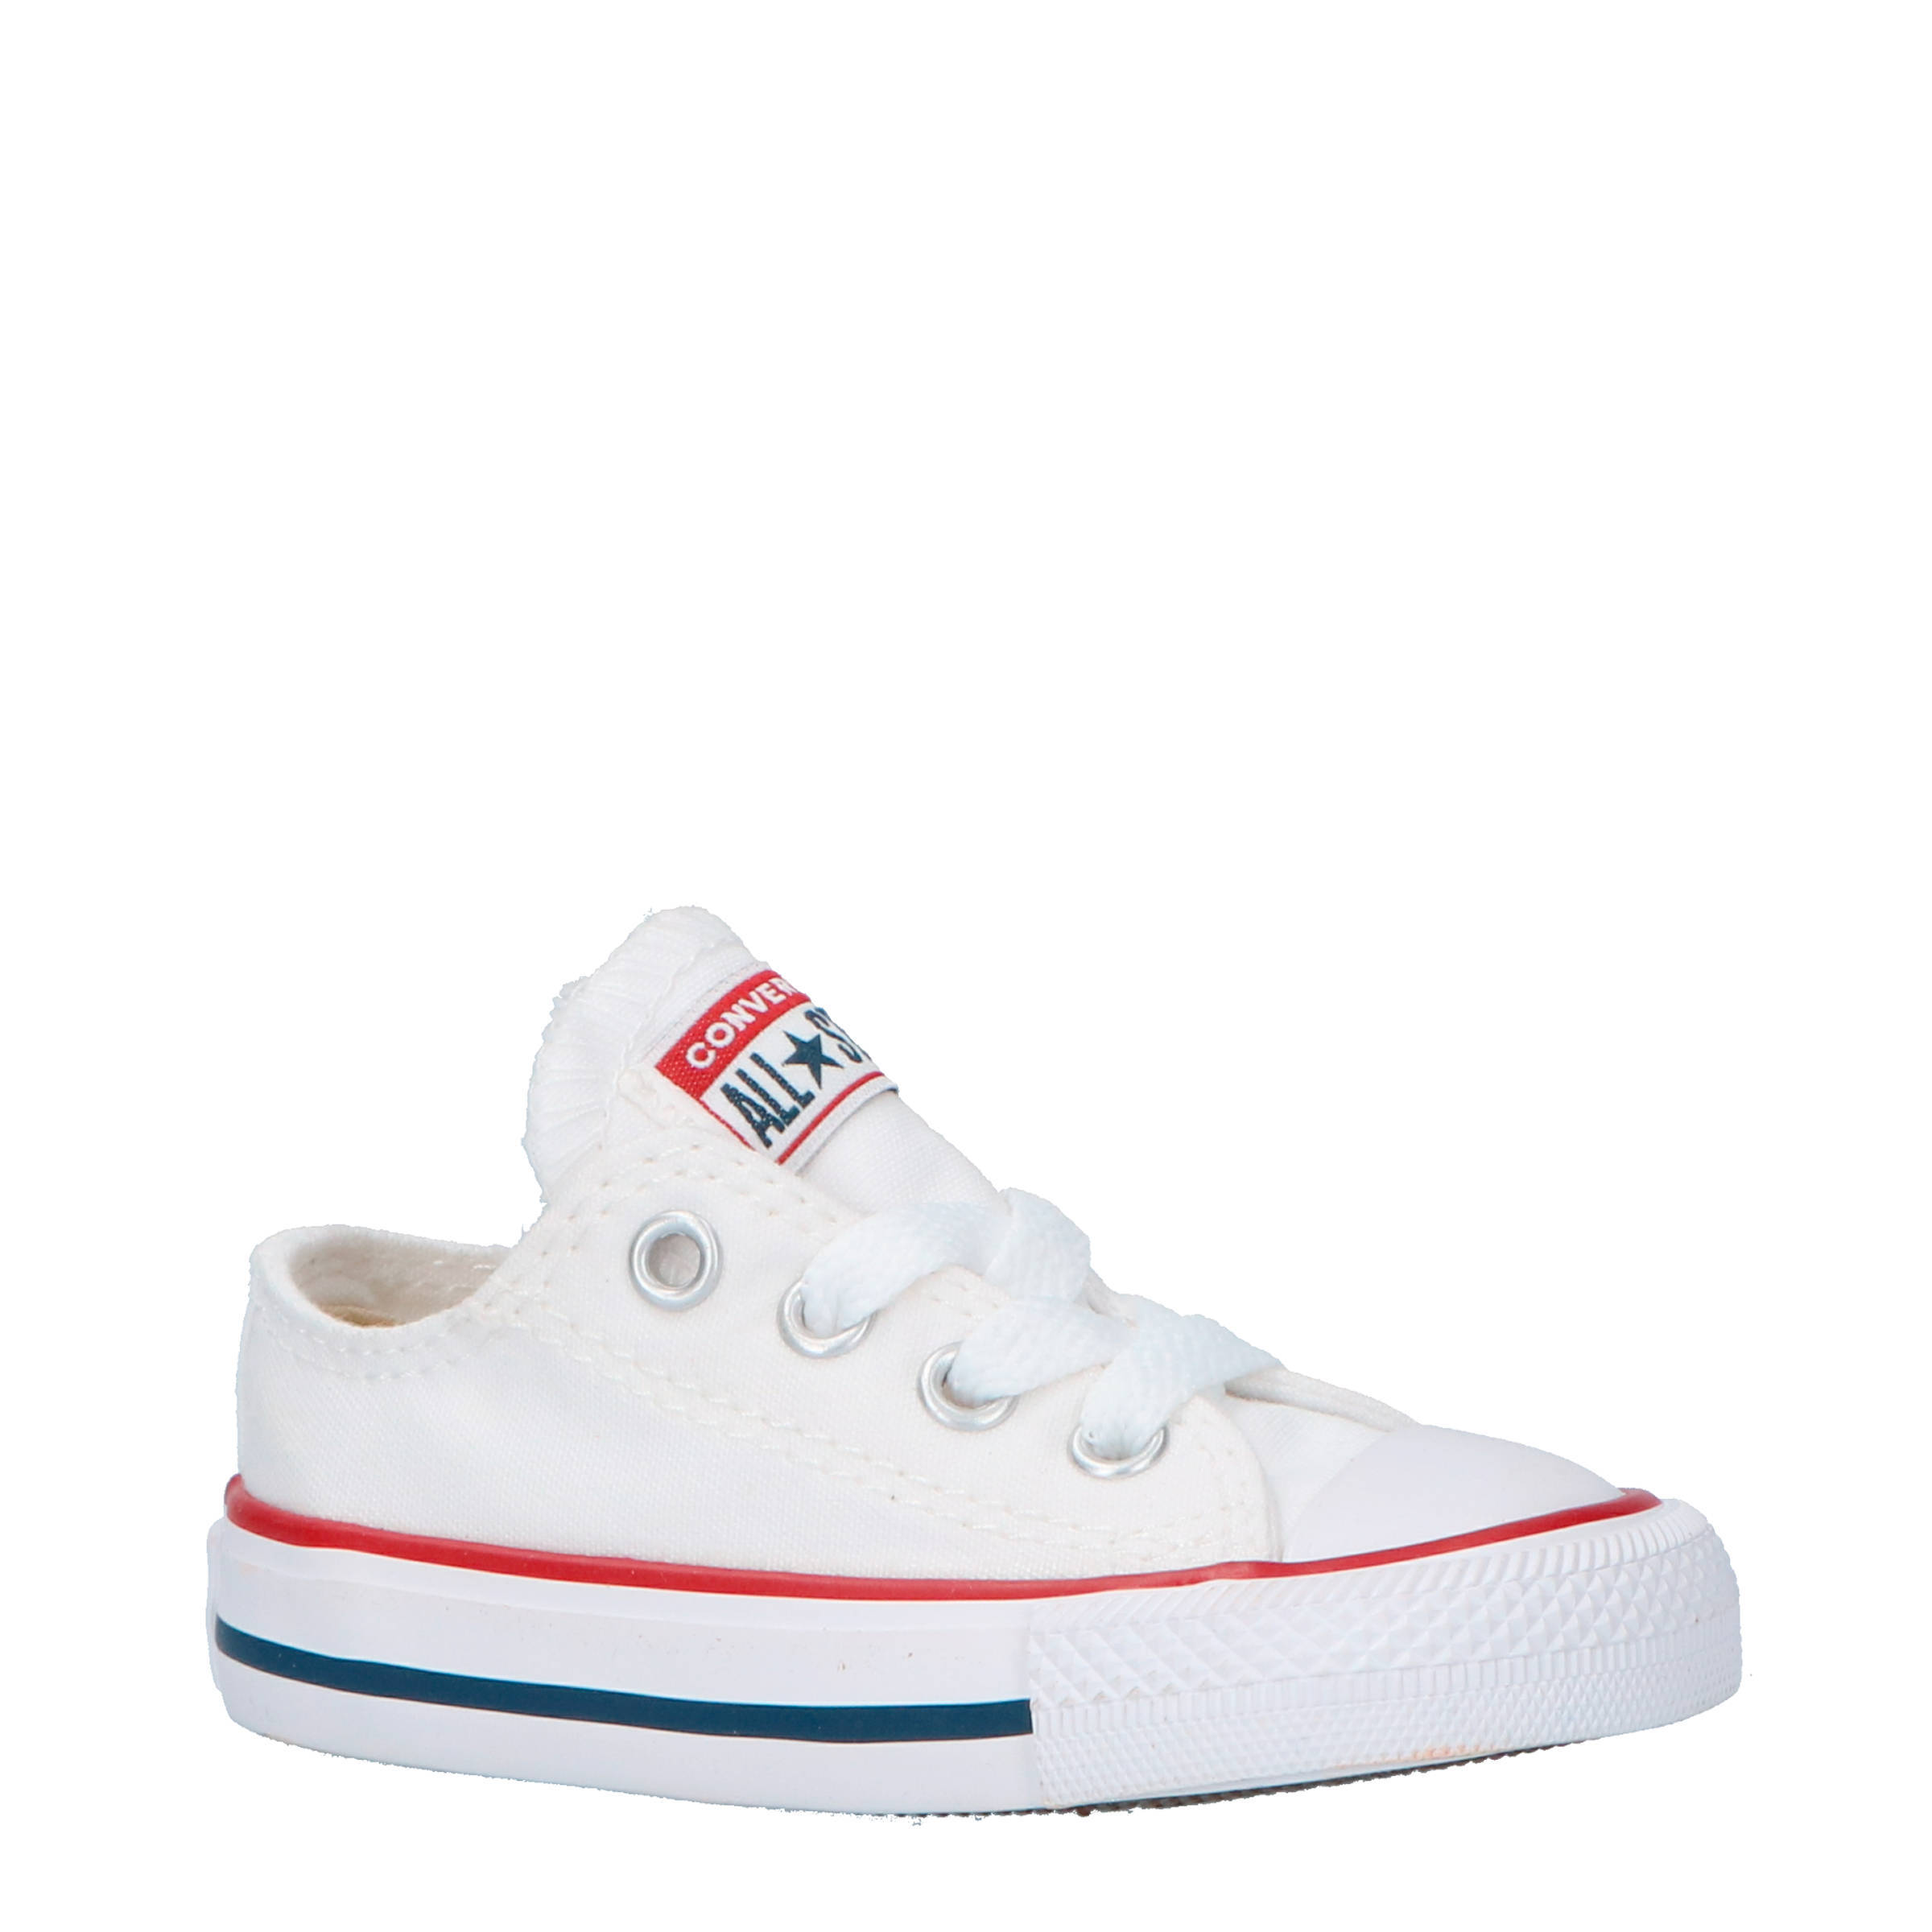 Converse Chuck Taylor All Star OX wit | wehkamp